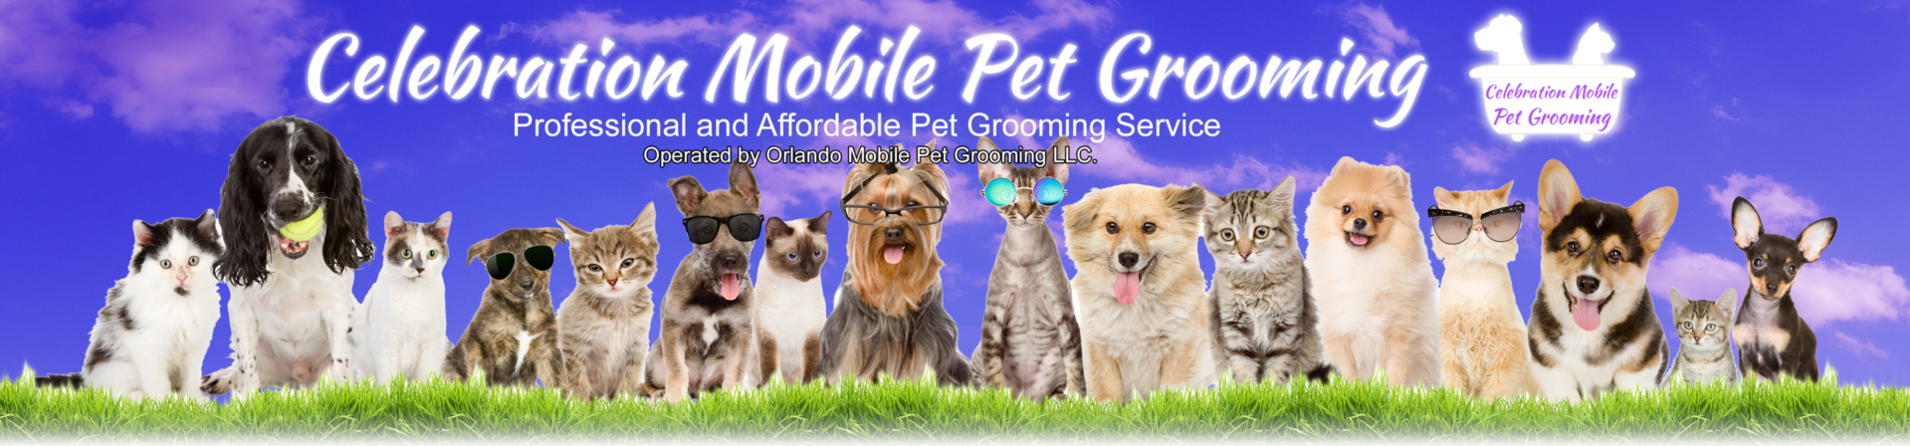 mobile pet grooming celebration service areas